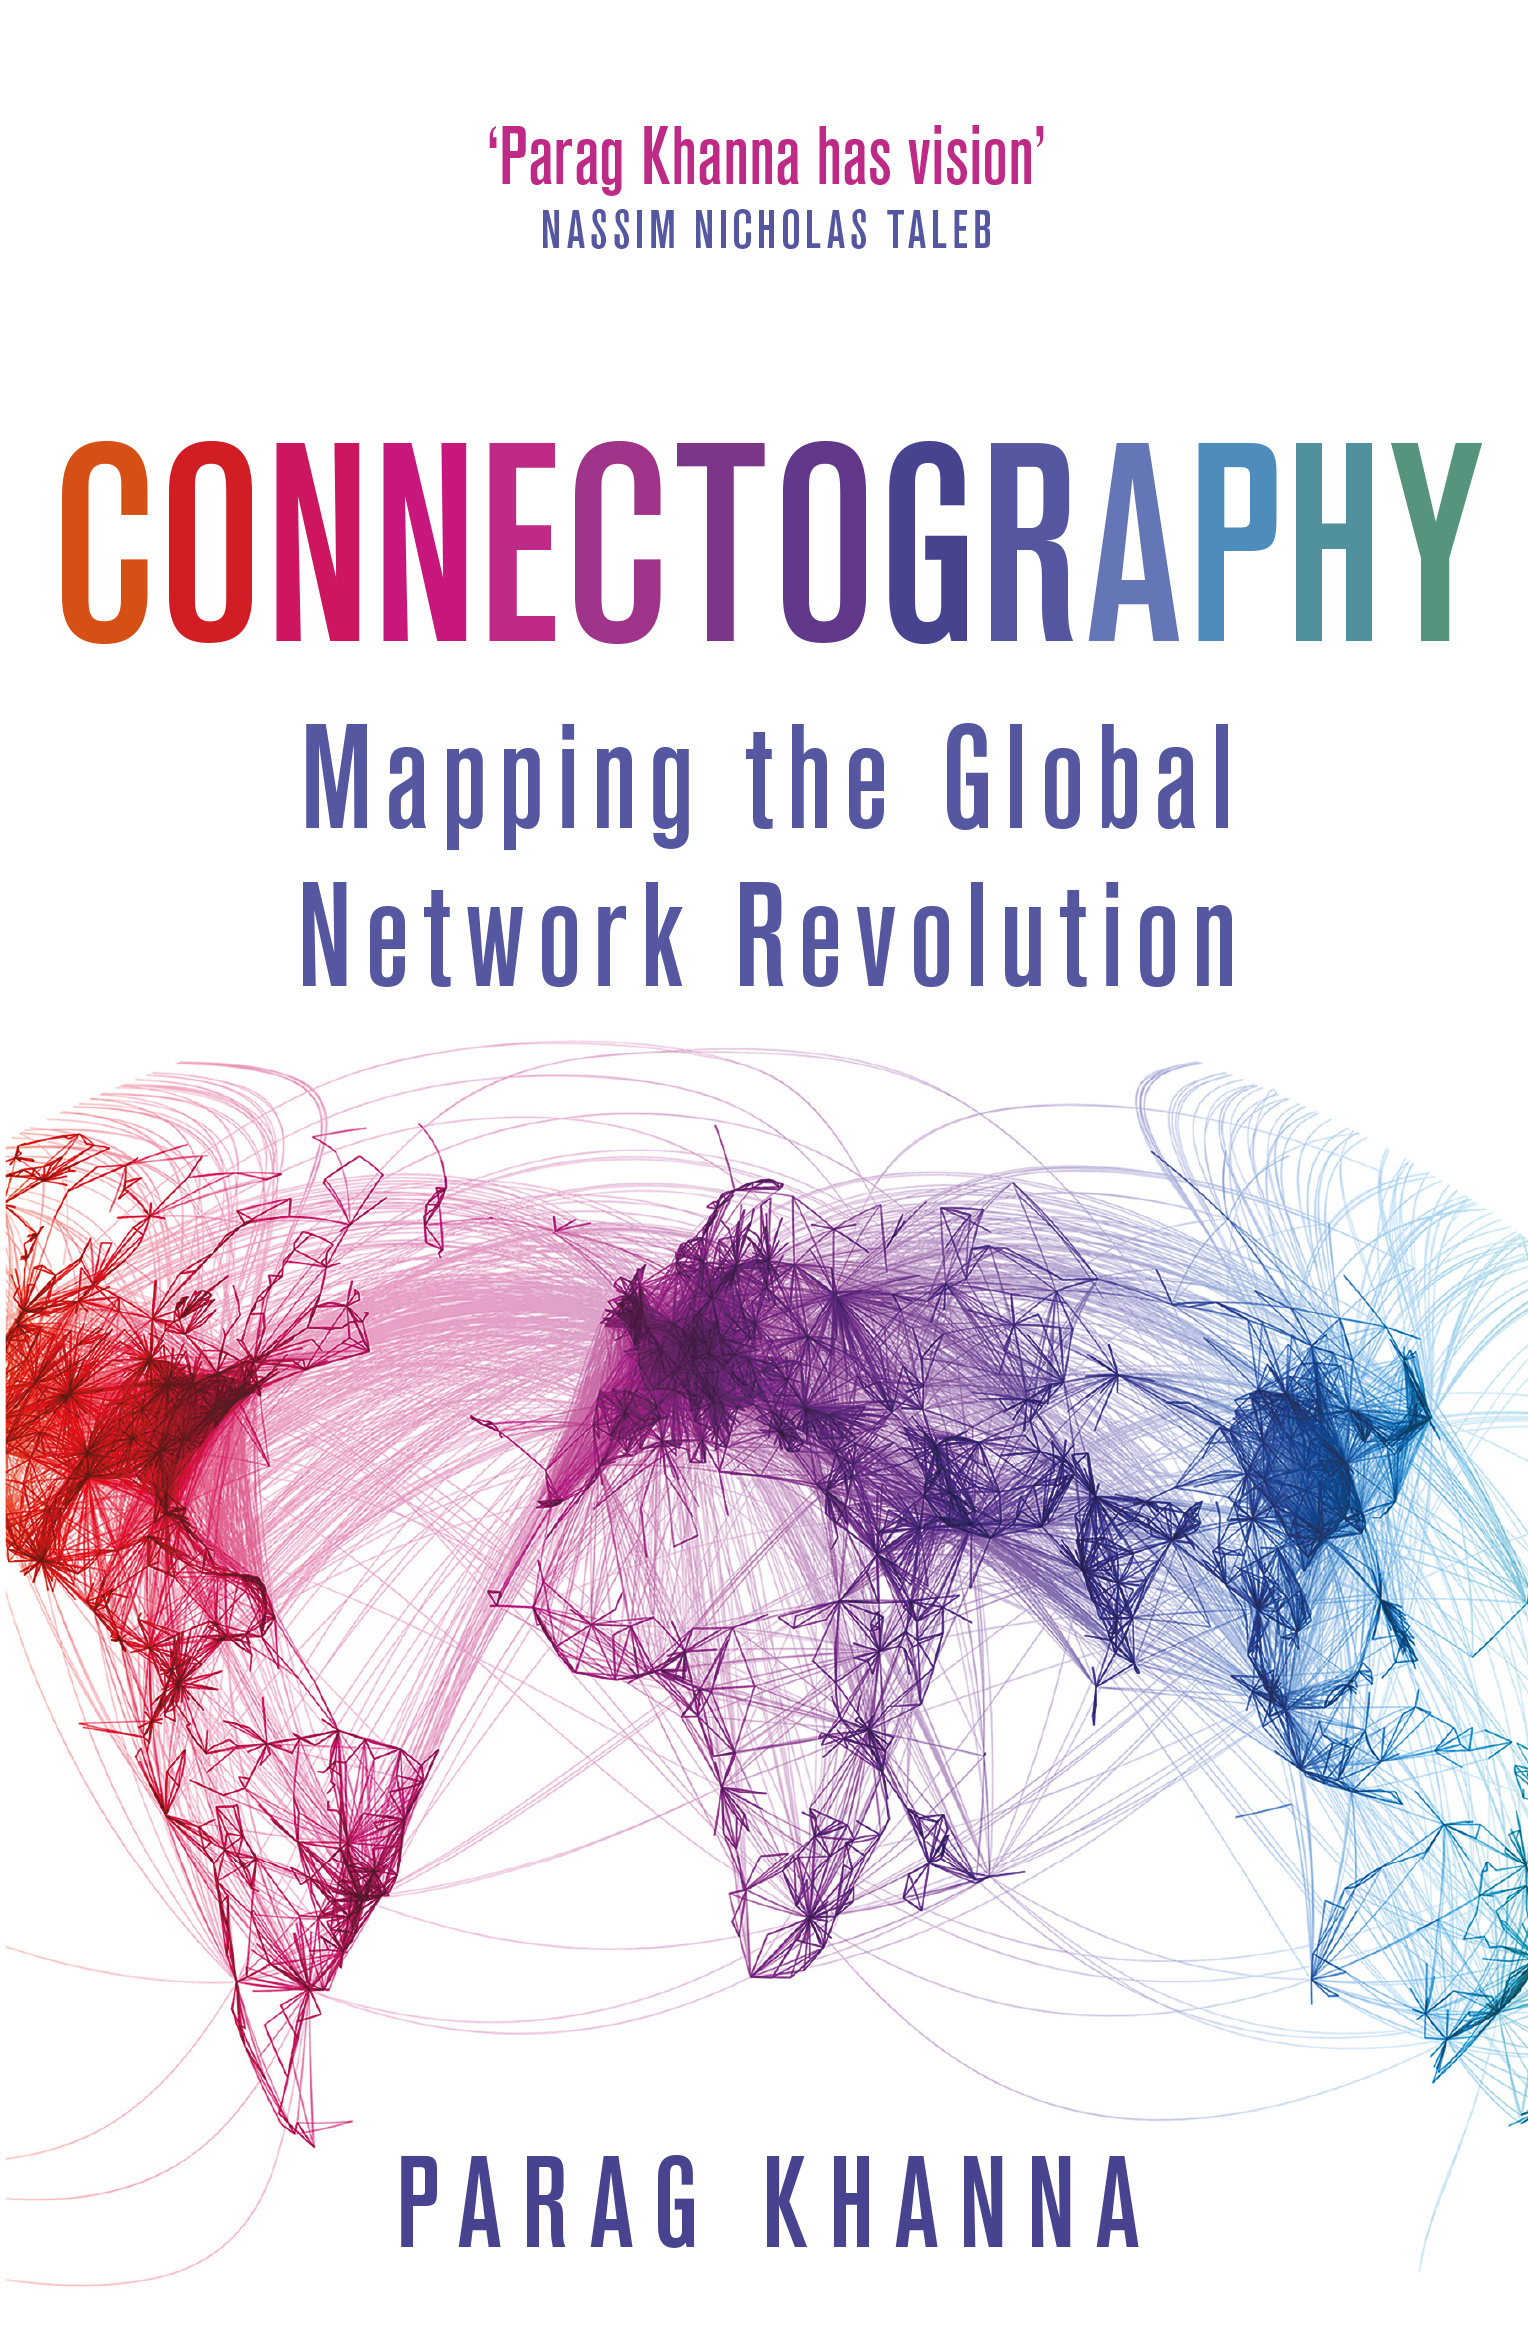 Connectography: Mapping the Global Network Revolution by Parag Khanna, ISBN: 9781474604253